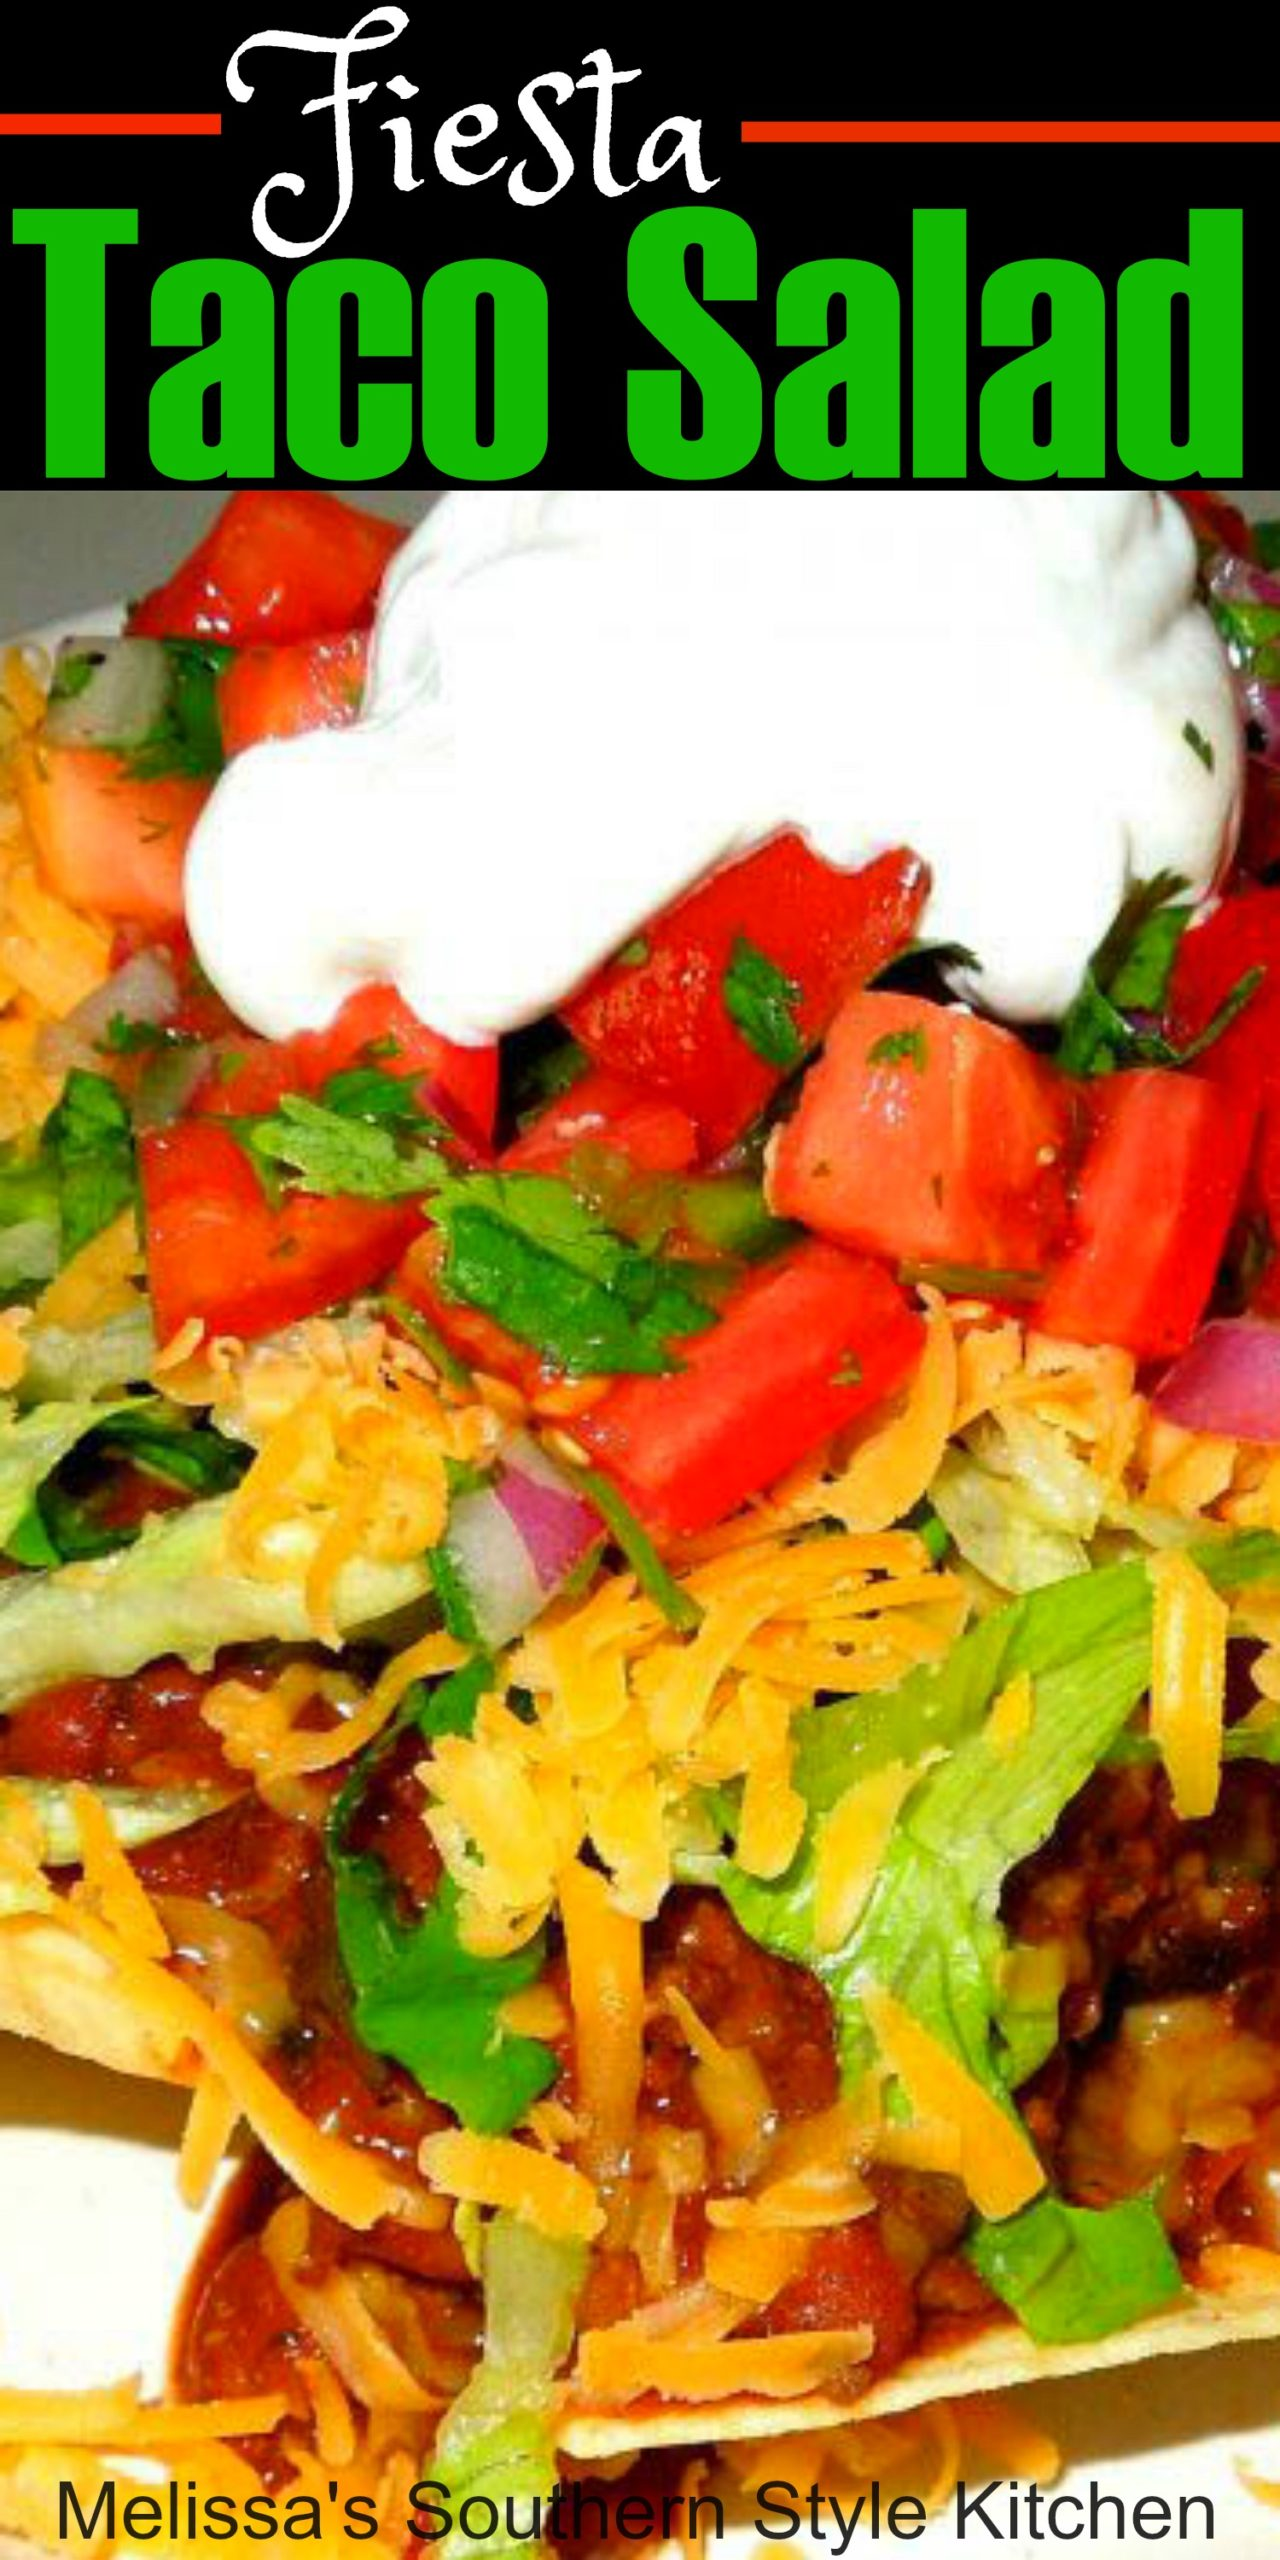 Fiesta Taco Salad will have the family running to the table #tacosalad #tacos #tacorecipes #chili #saladrecipes #tacotuesday #southernrecipes #southernfood #melissassouthernstylekitchen #dinnerideas